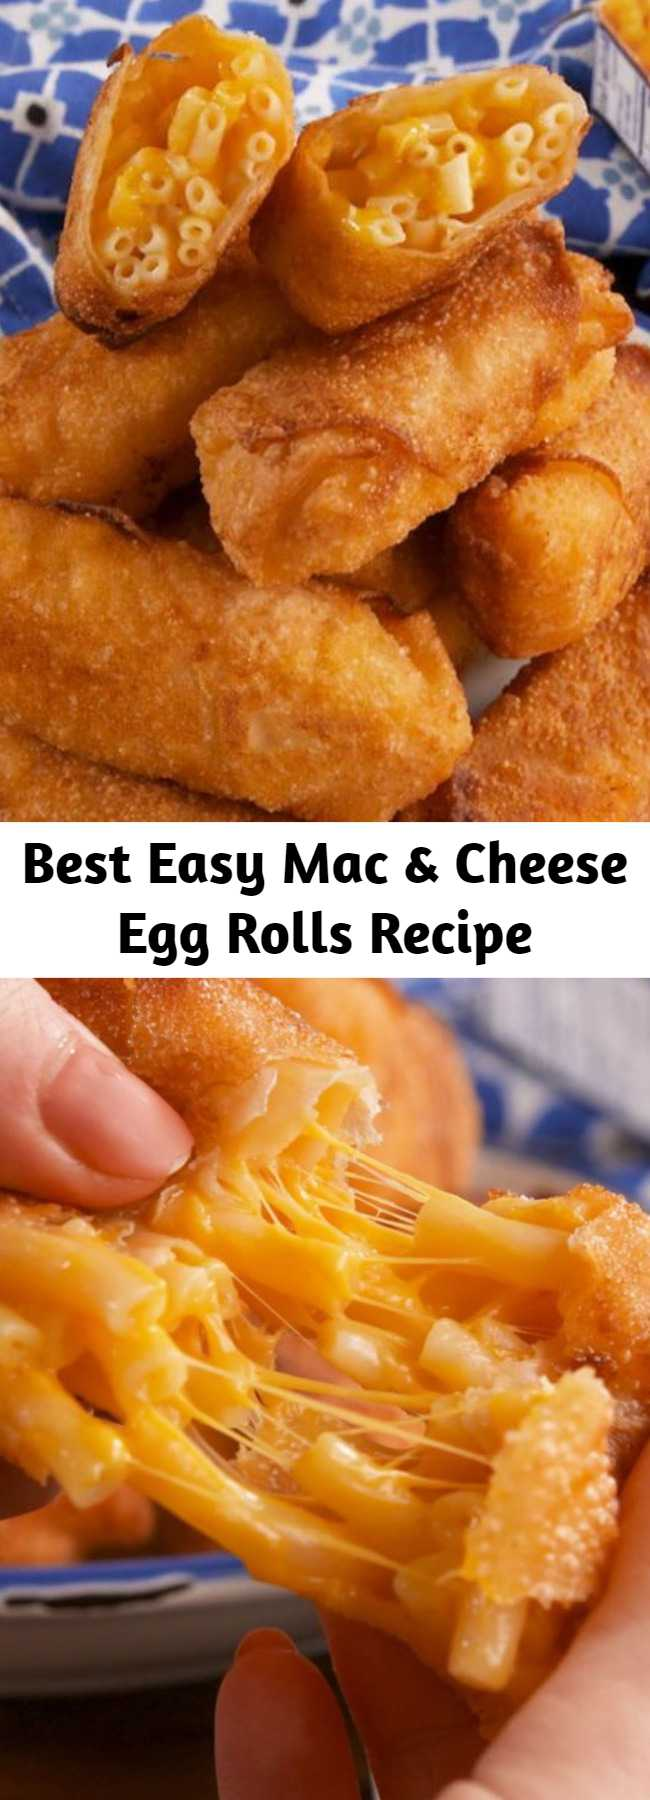 Best Easy Mac & Cheese Egg Rolls Recipe - Turns out the best way to eat mac & cheese is fried inside an egg roll wrapper. #easy #recipe #kids #kidfriendly #fried #cheese #cheesy #mac #macncheese #macaroni #eggroll #eggrolls